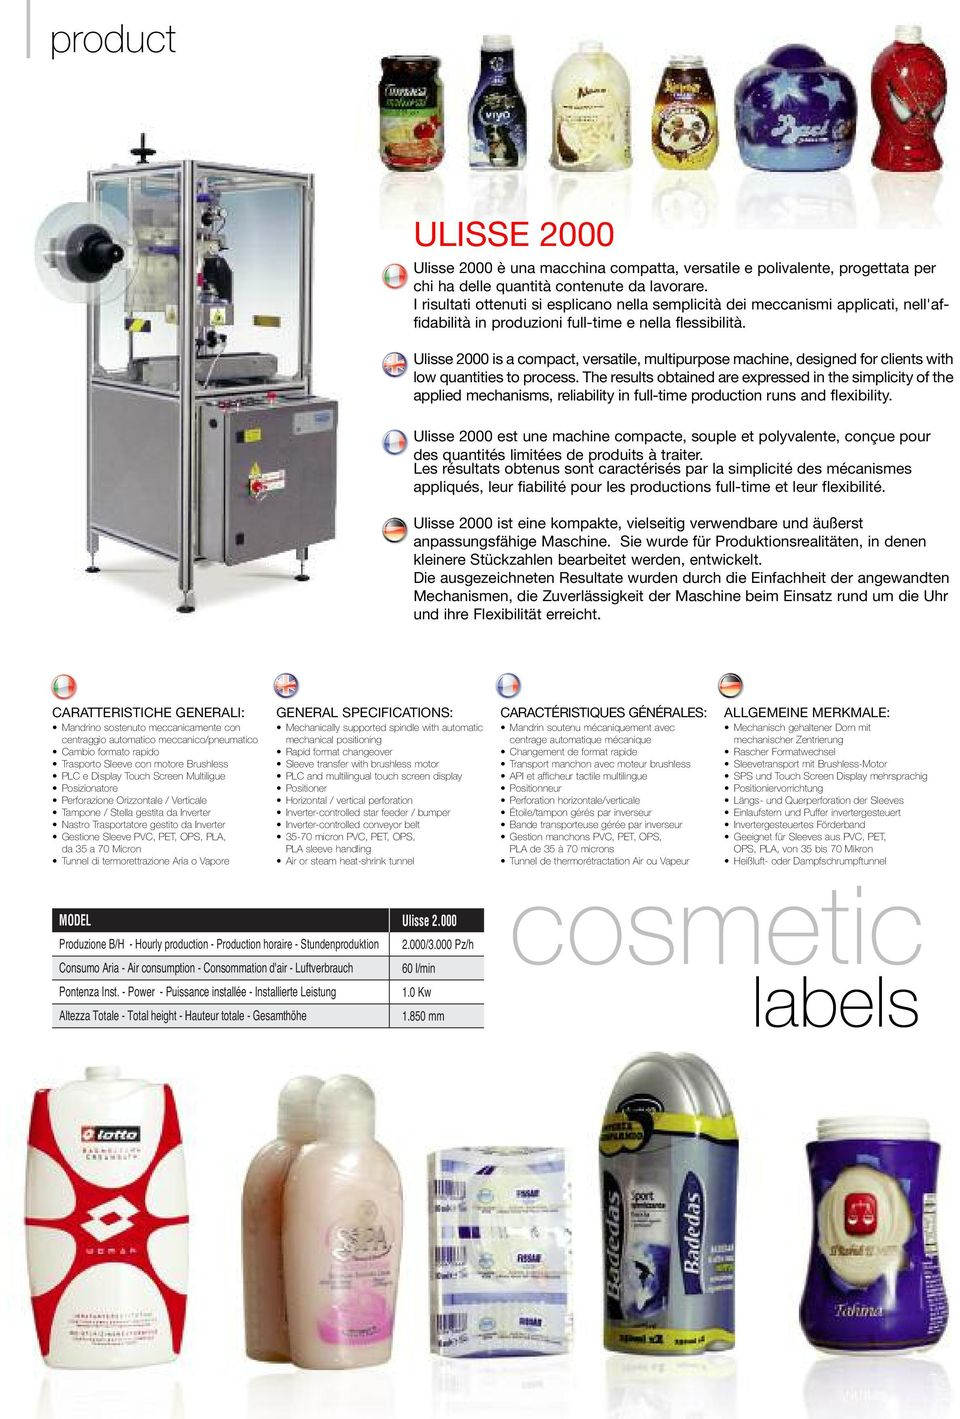 Ulisse 2000 is a compact, versatile, multipurpose machine, designed for clients with low quantities to process.